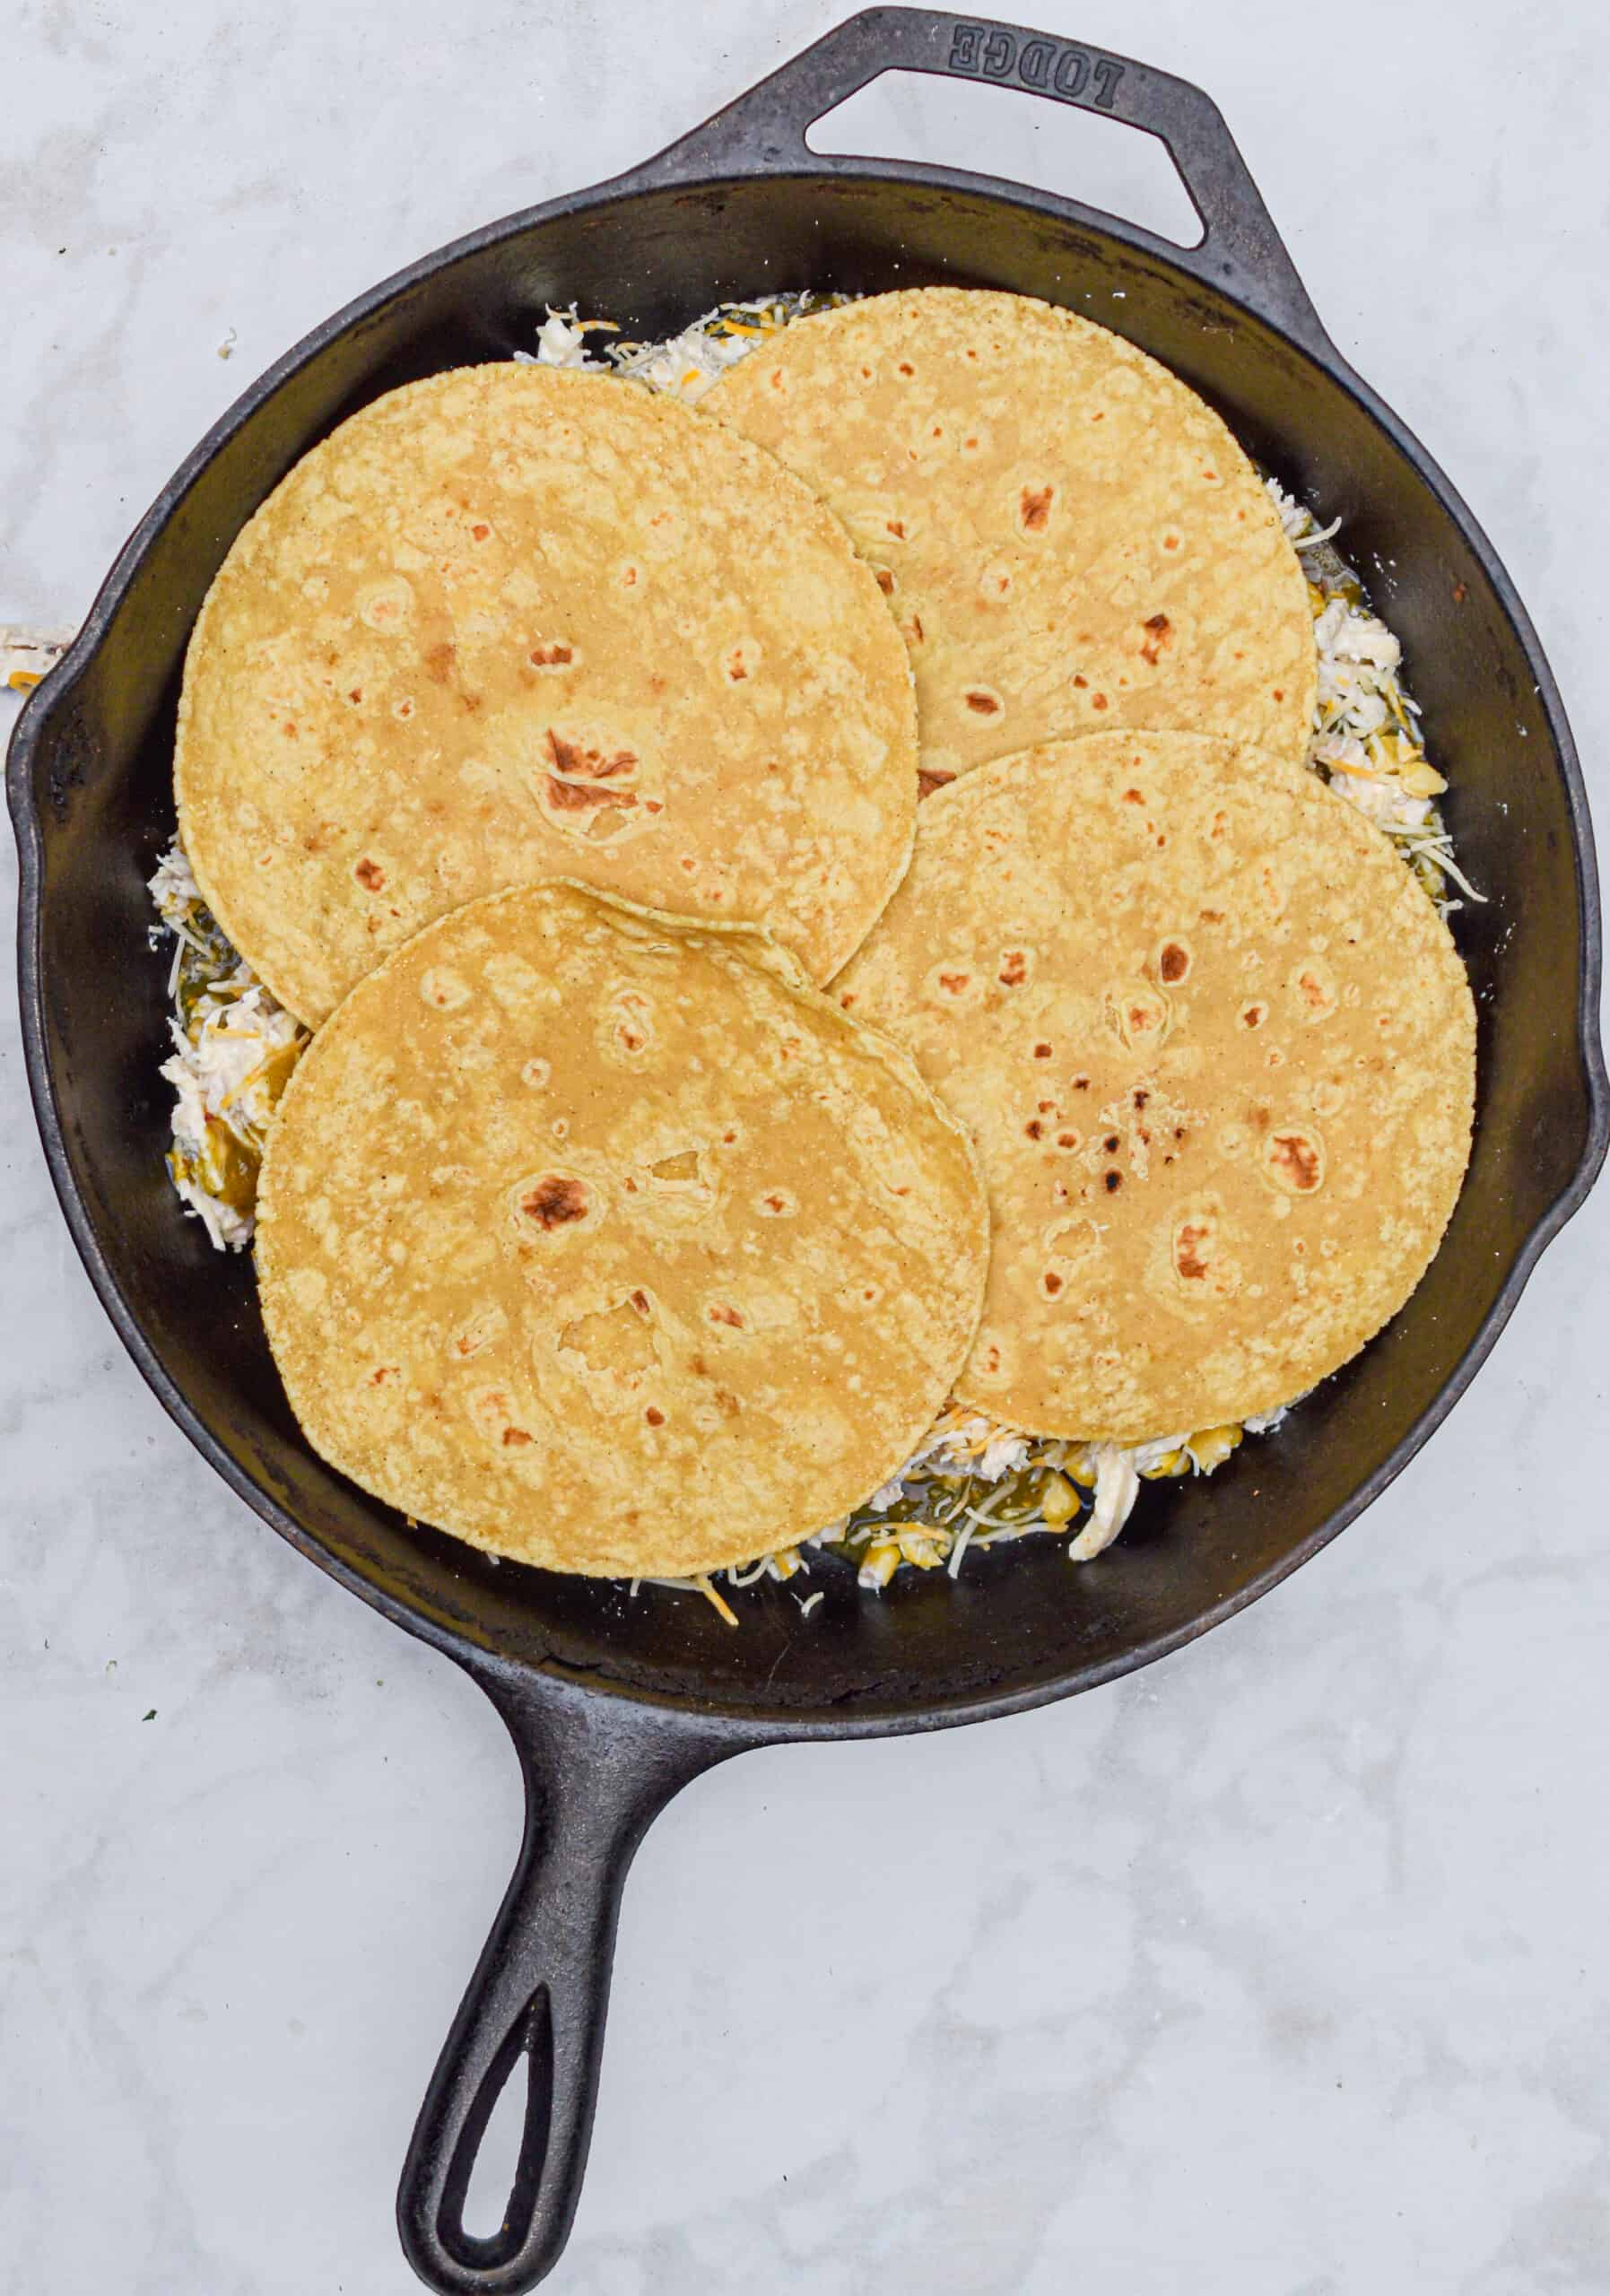 Add another layer of corn tortillas